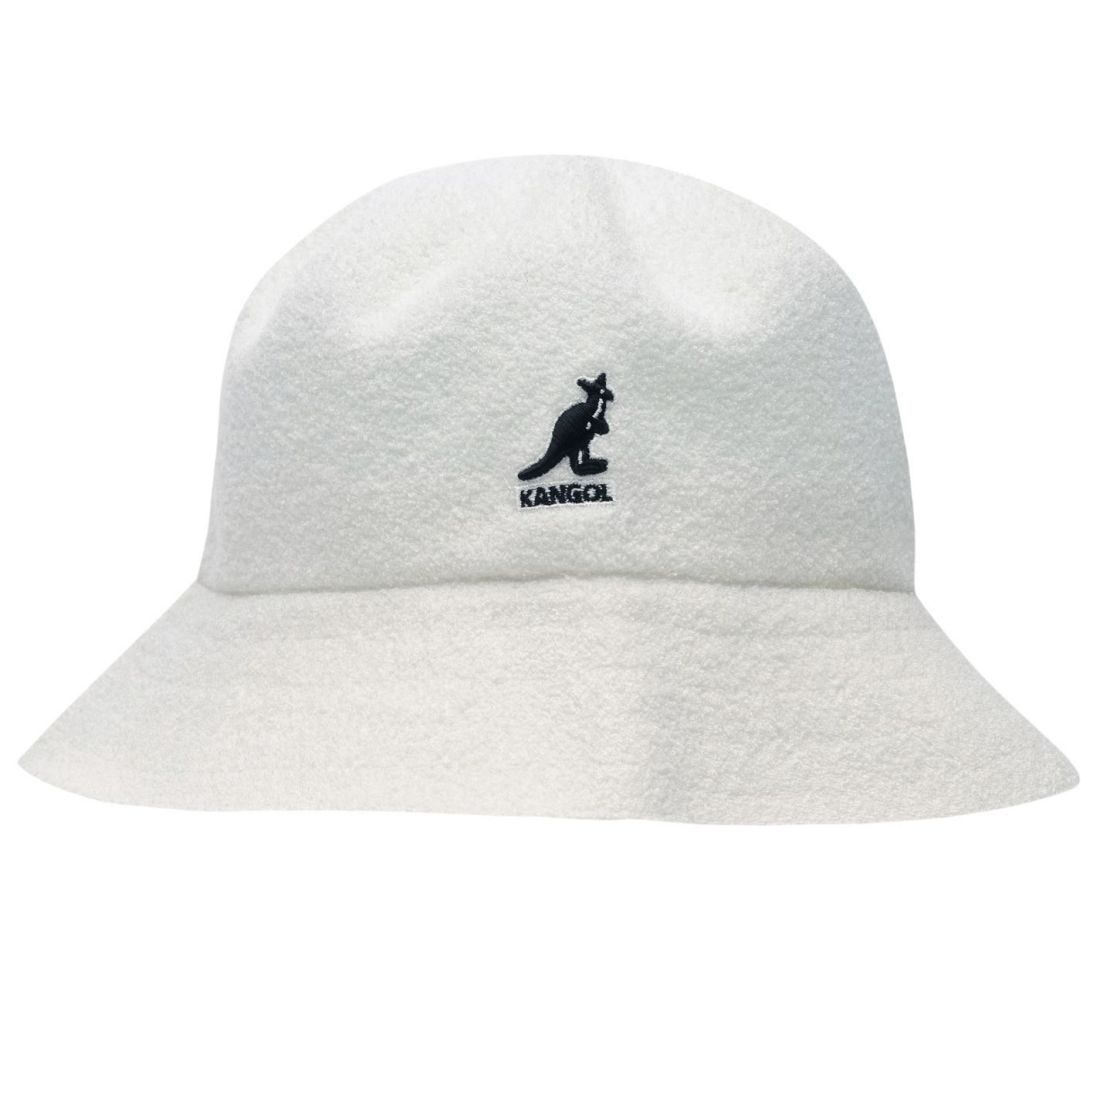 9f8a5475d86 Kangol Mens Boucle Bucket Hat